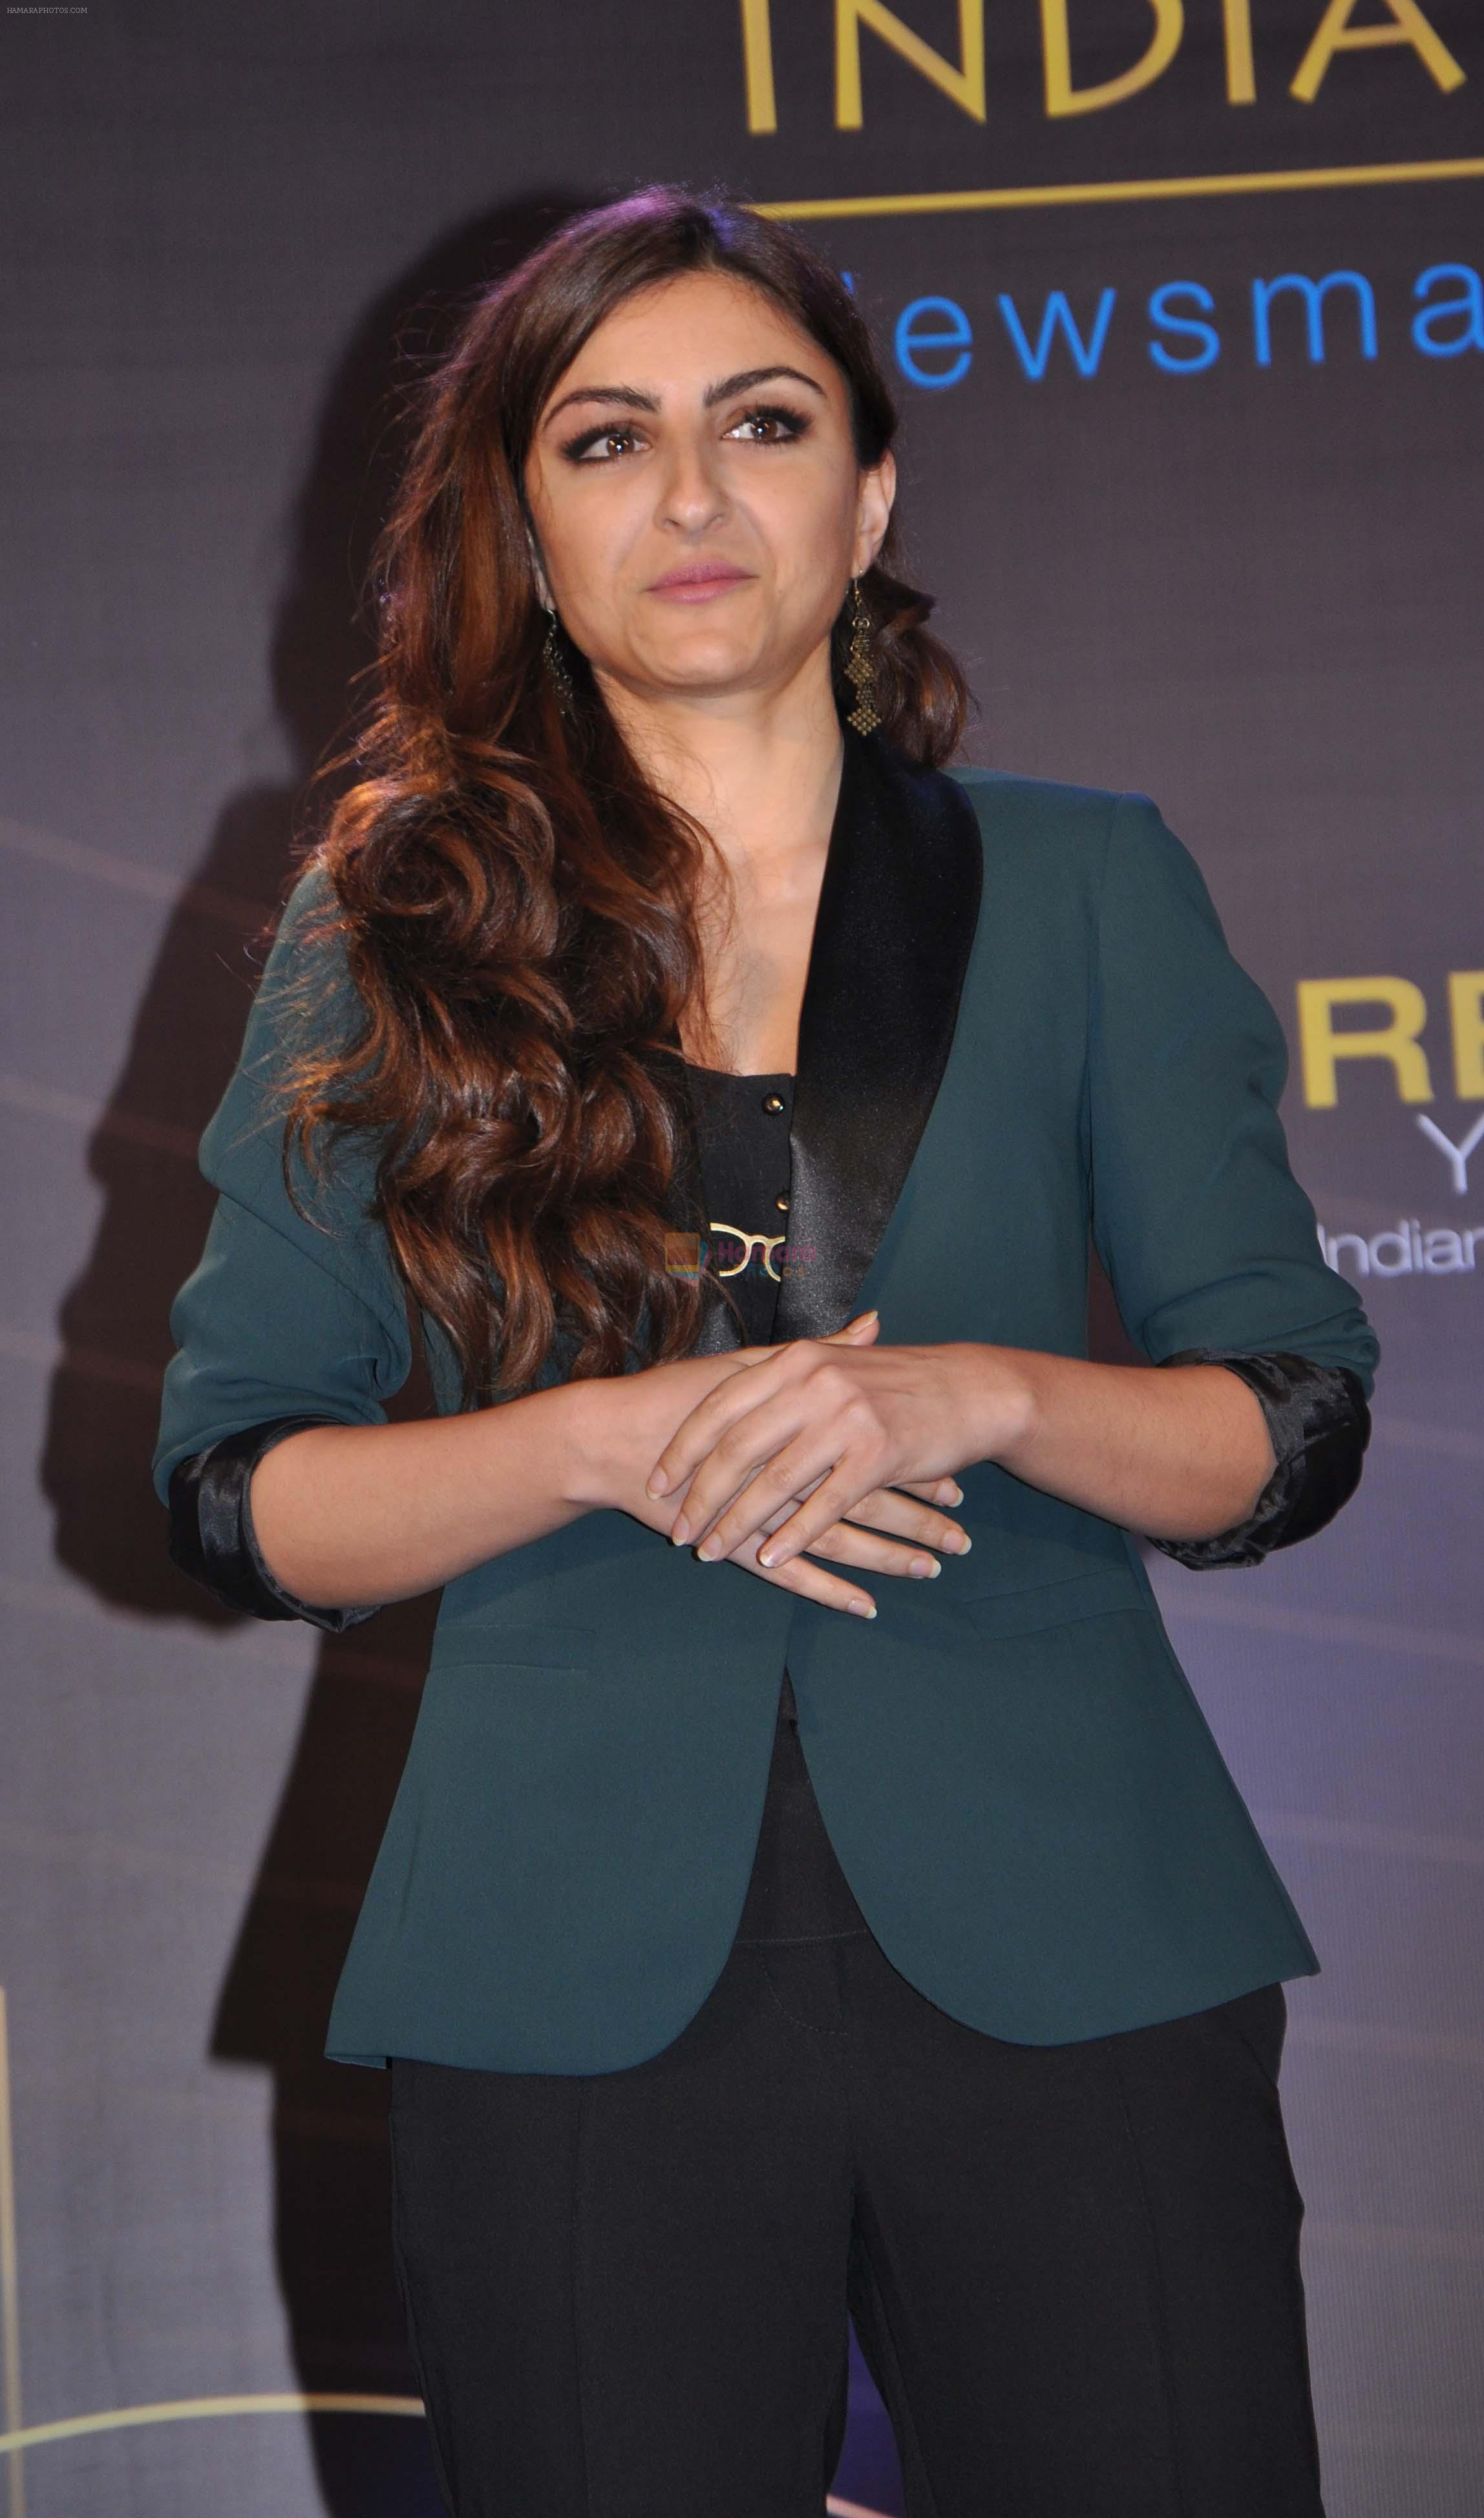 Soha Ali Khan launch India Realty Yearbook & Real Leaders at The premier Indian Realty Awards 2013 in New Delhi on 8th Oct 2013